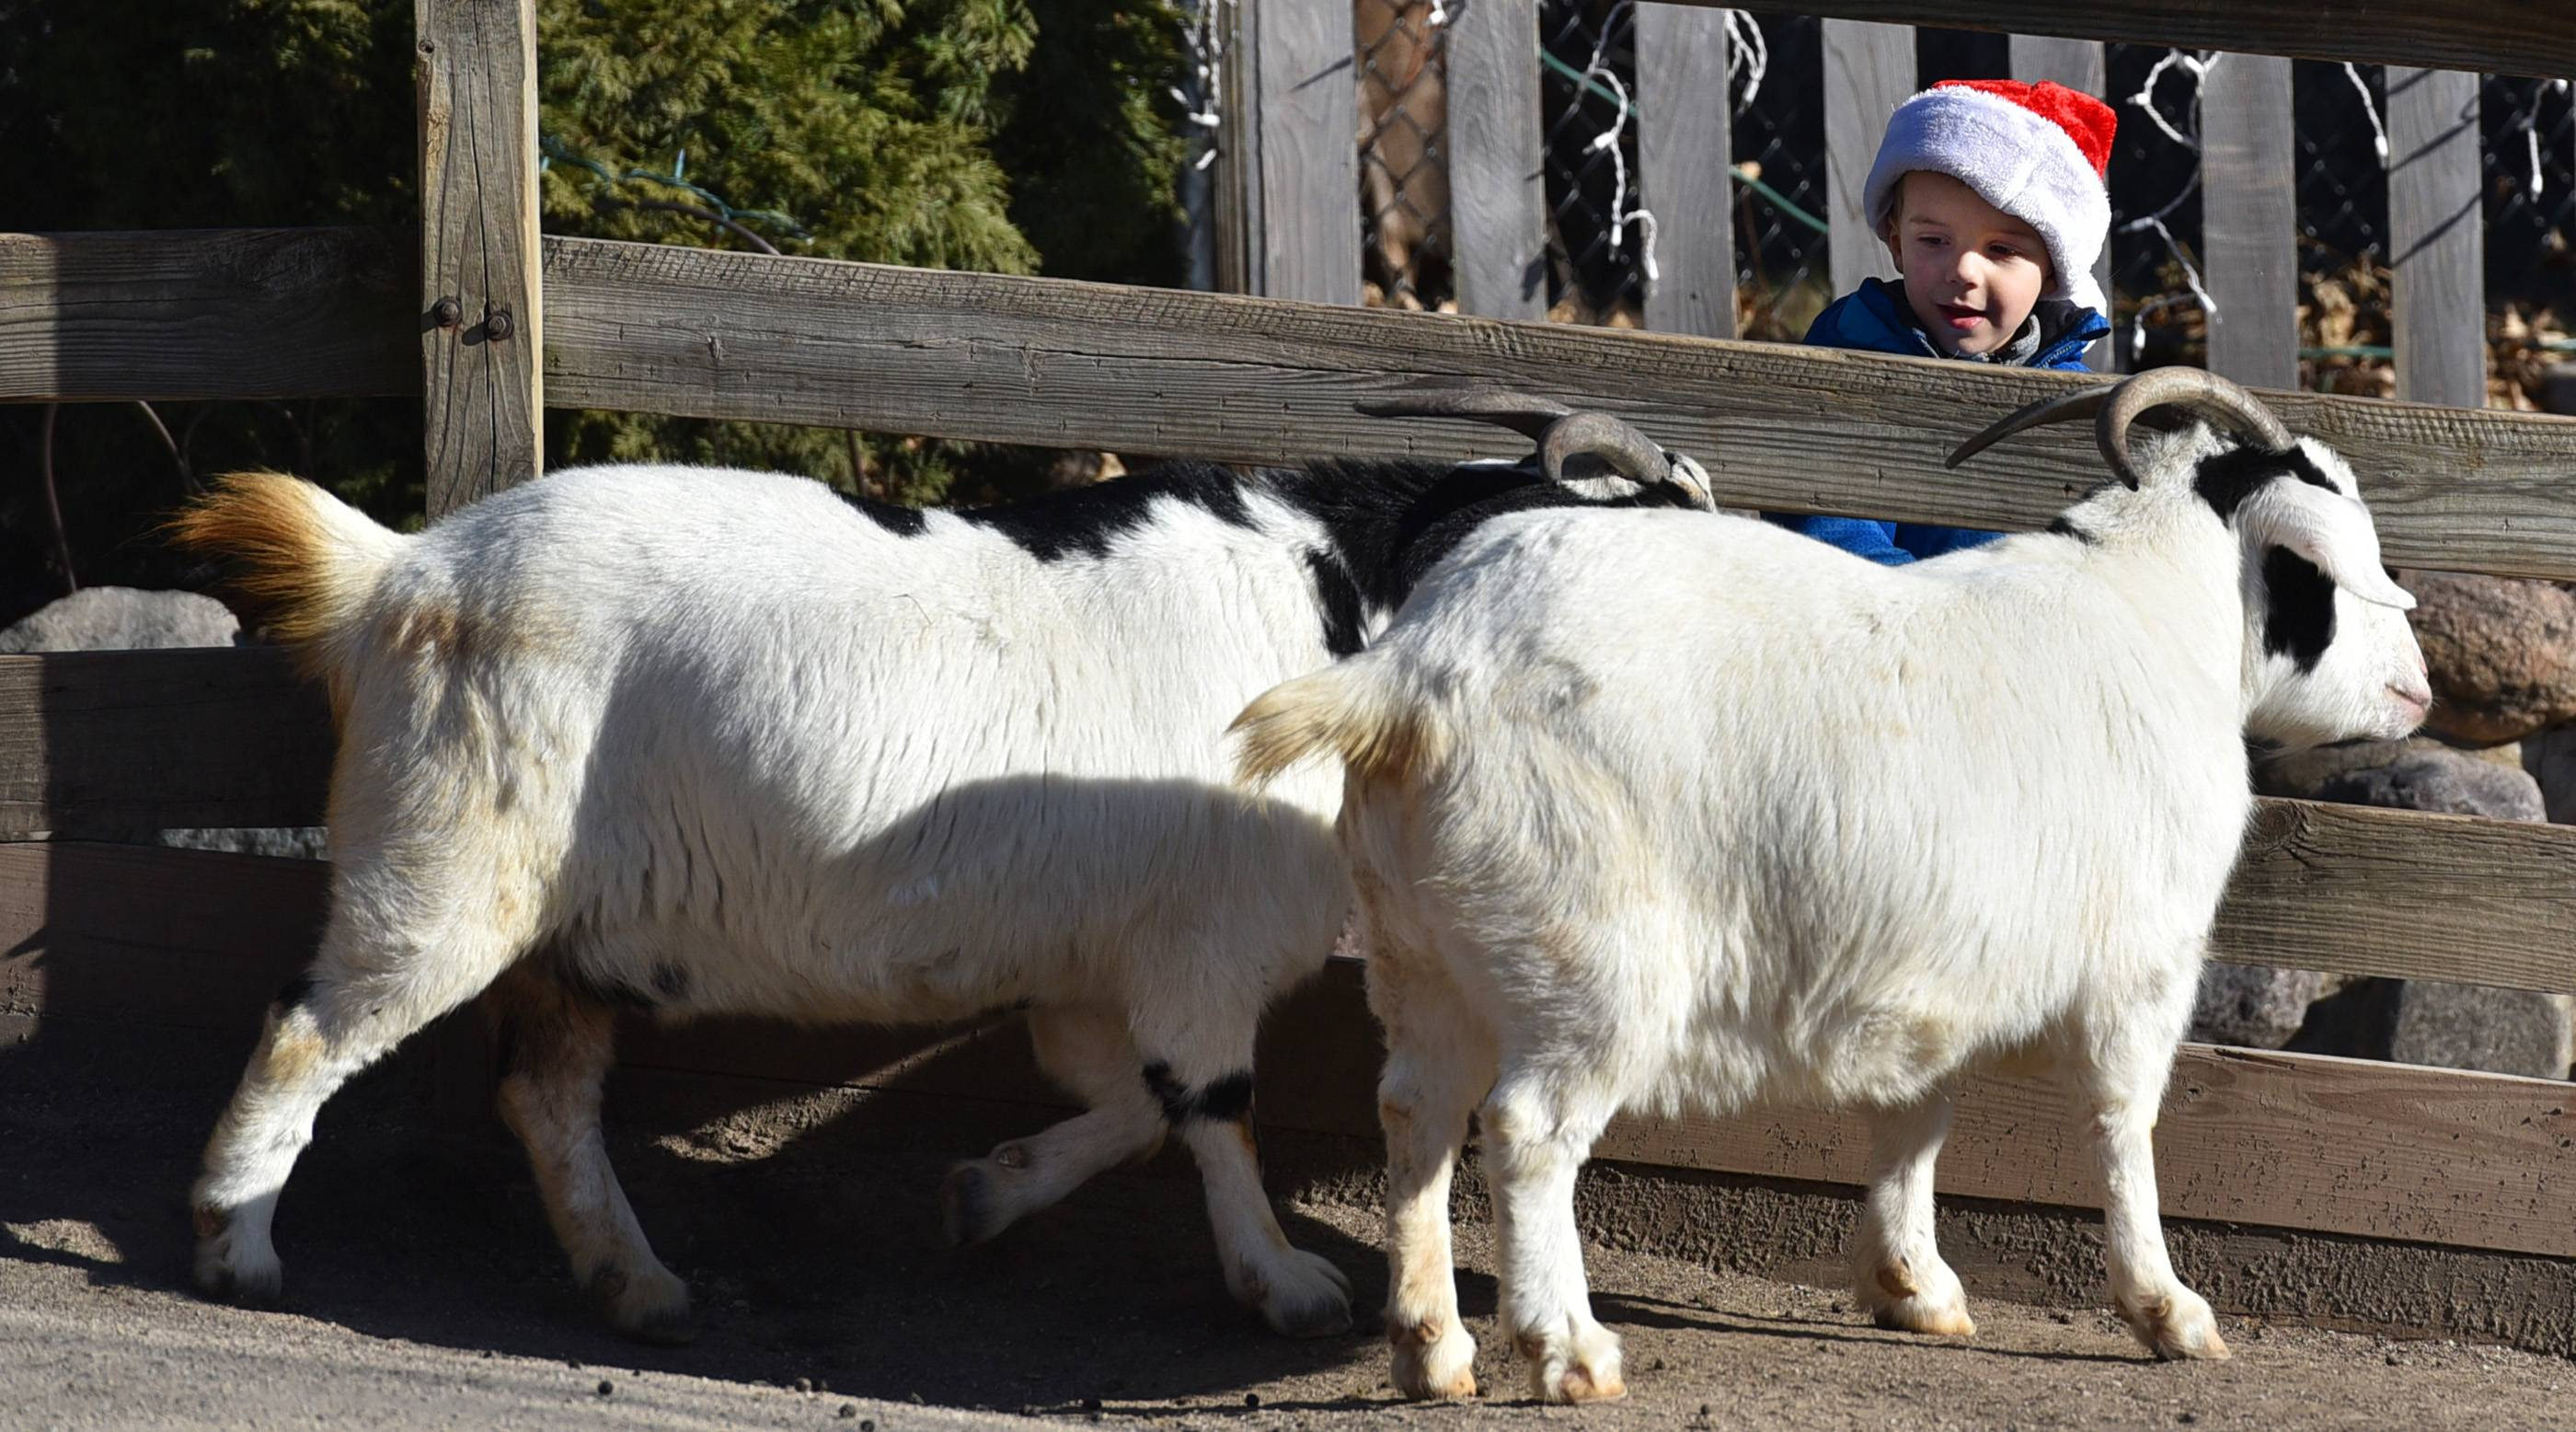 Max Backus, 4, visits with a pair of white goats Saturday at Randall Oaks Barnyard Zoo in West Dundee. He was with his parents Frank and Aggie Backus of Crystal Lake. Max also visited with Santa.